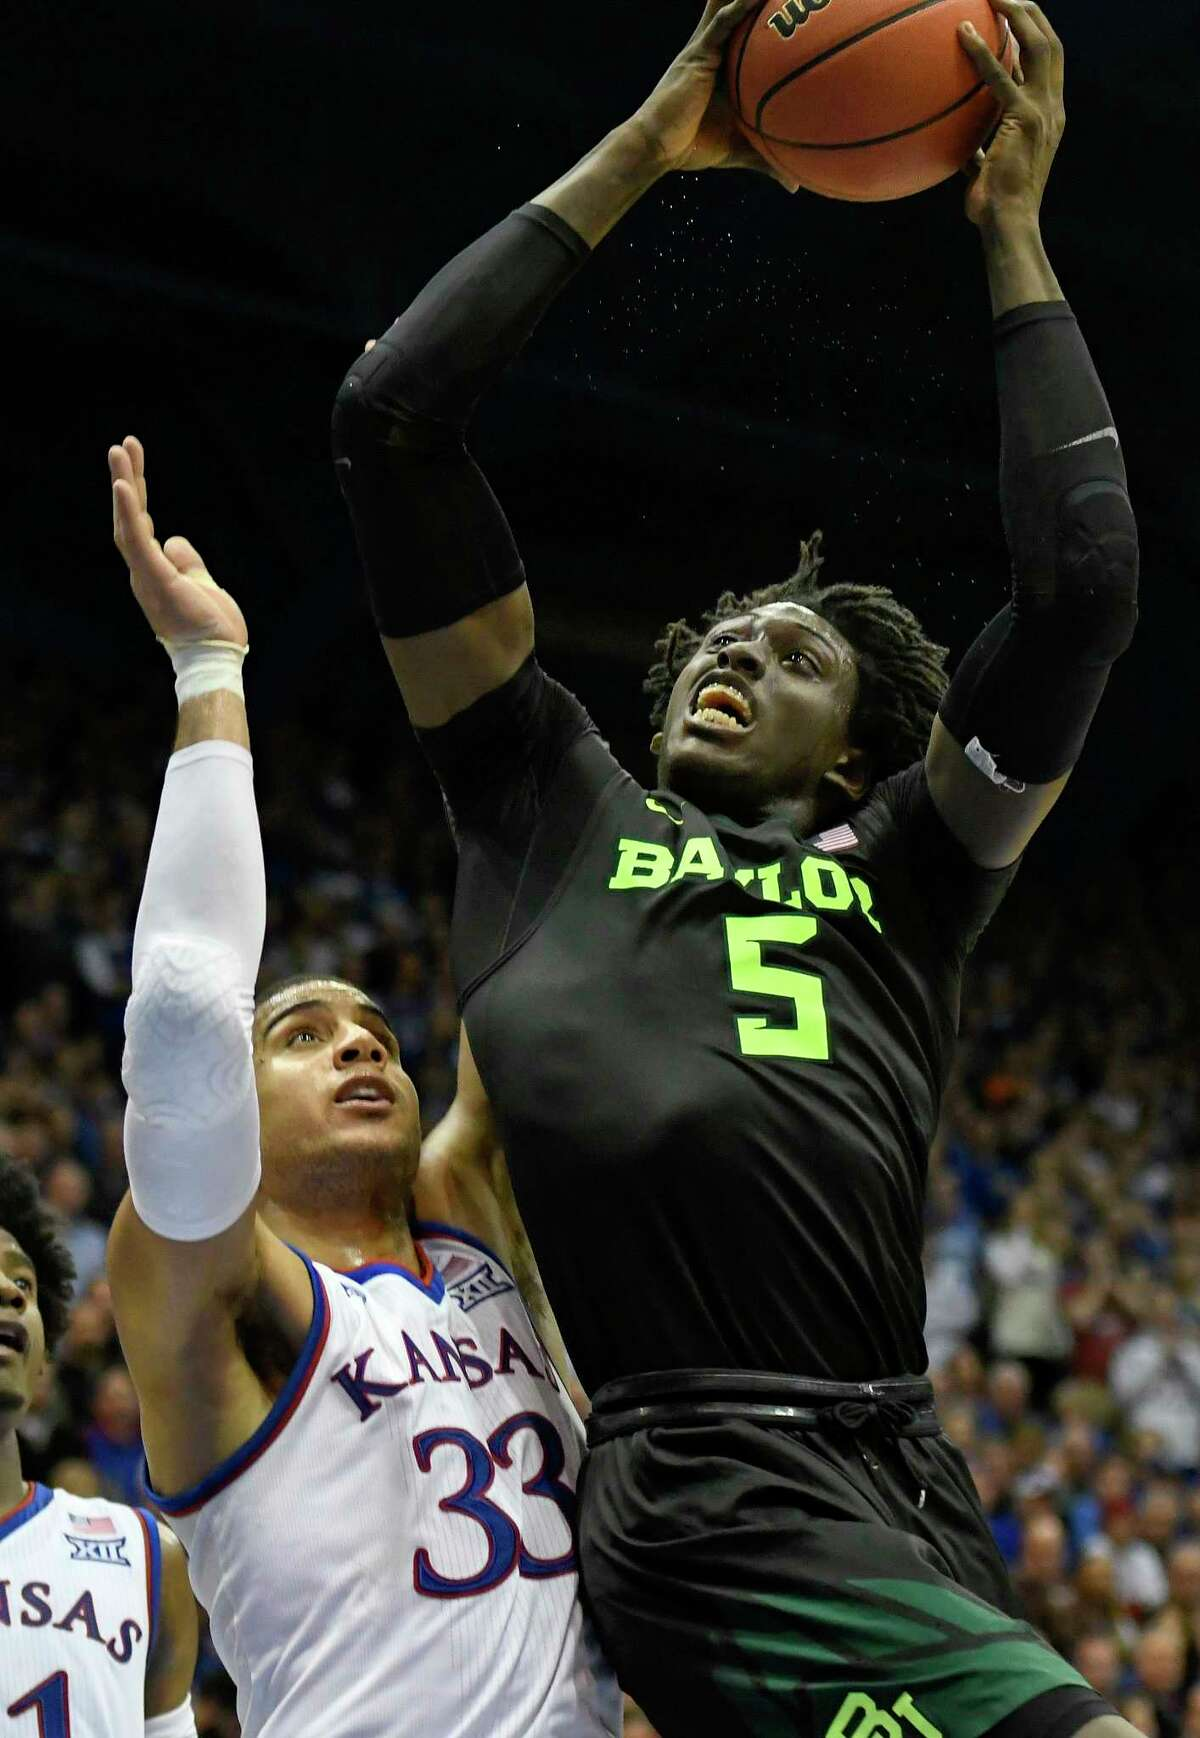 Baylor Bears forward Johnathan Motley (5) goes up for a shot against Kansas Jayhawks forward Landen Lucas (33) during the second half of an NCAA college basketball game in Lawrence, Kan., Wednesday, Feb. 1, 2017. (AP Photo/Reed Hoffmann)